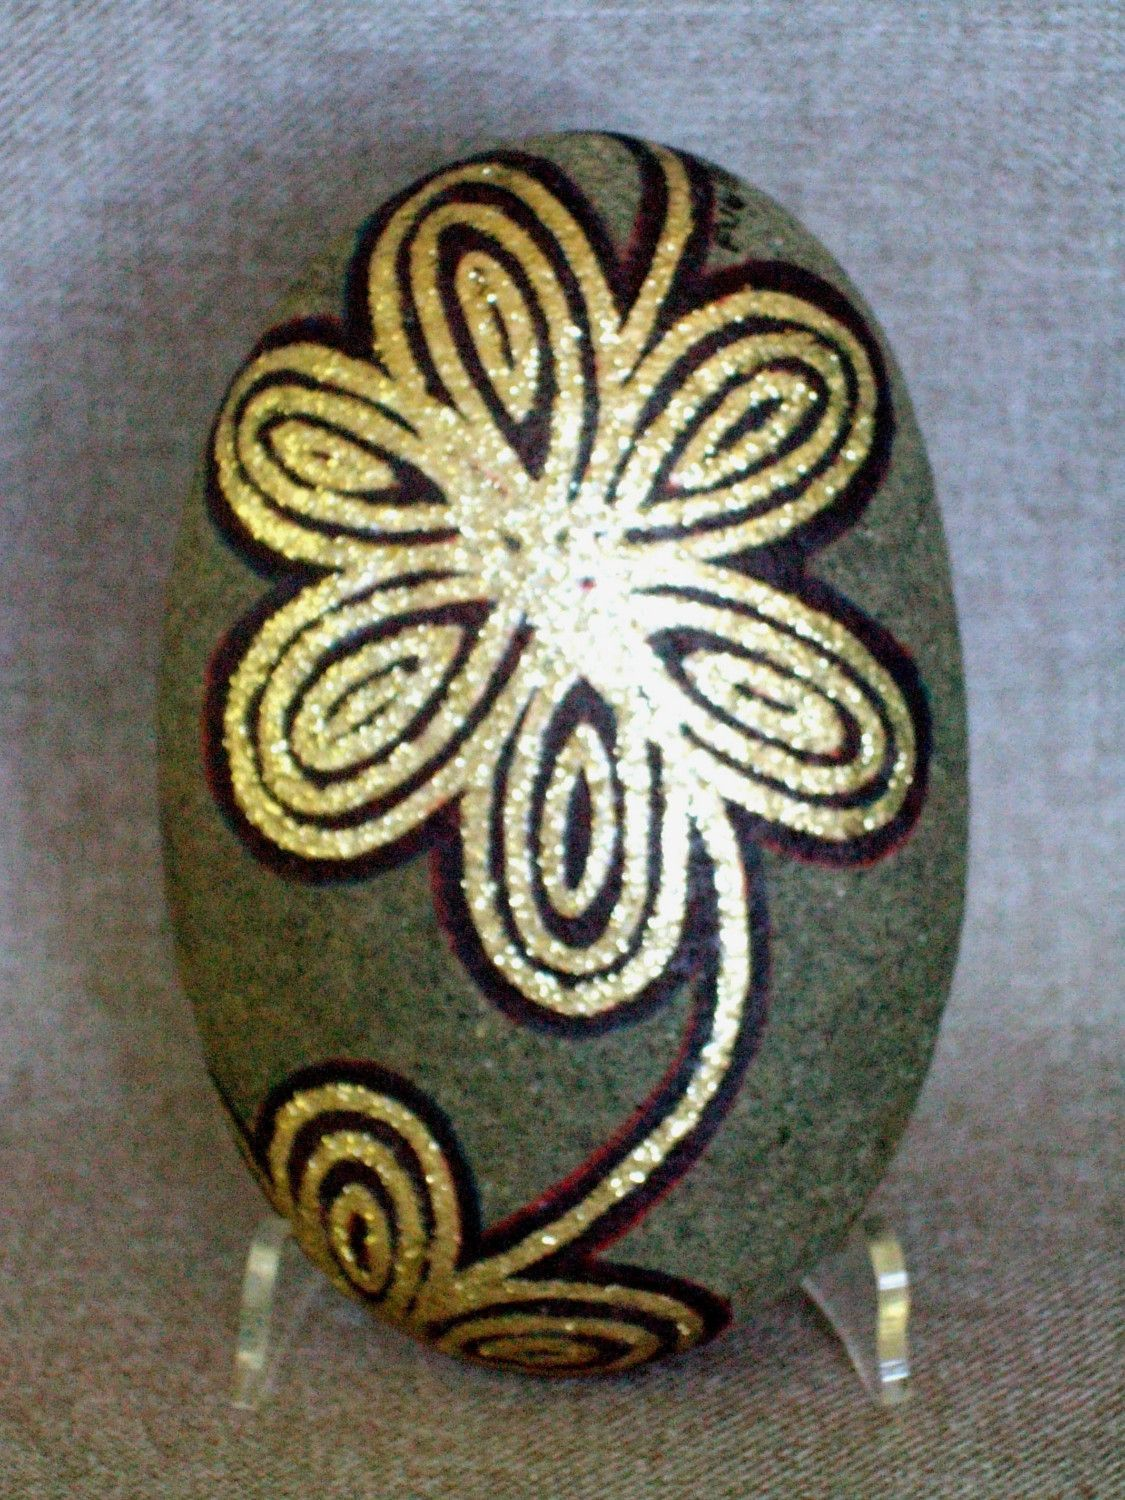 Photo of Items similar to Gold Floral Design Unique 3D Art Object, Hand Painted Rock, Signed Numbered on Etsy